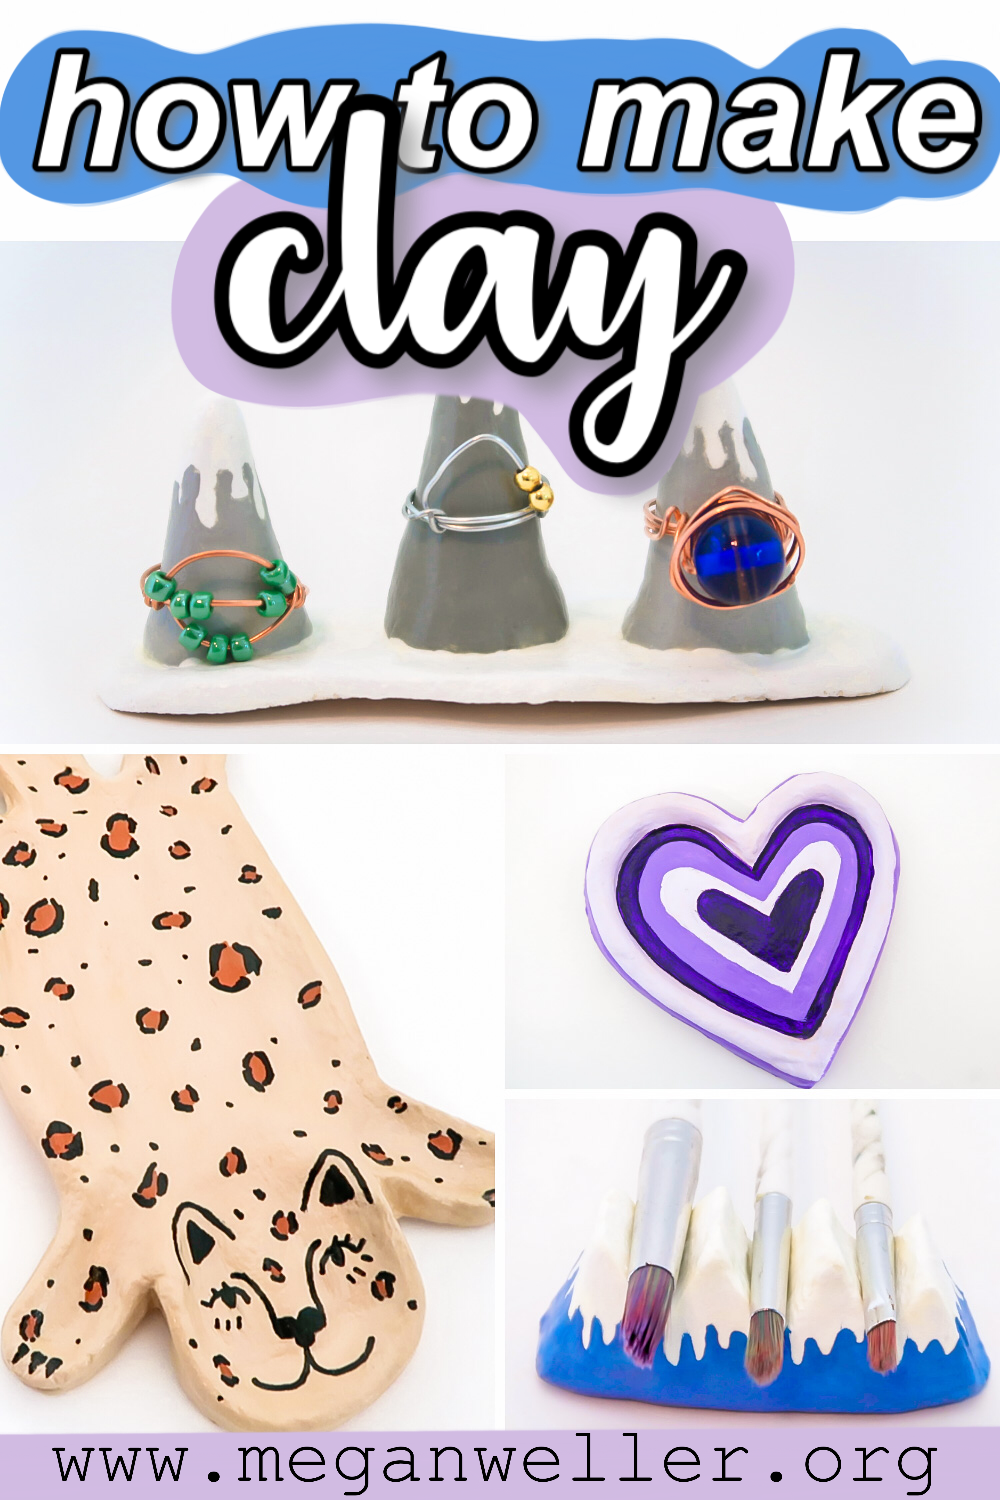 How to make clay (salt dough) with things you have at home! Air Dry Clay ideas, things to do when you're bored.